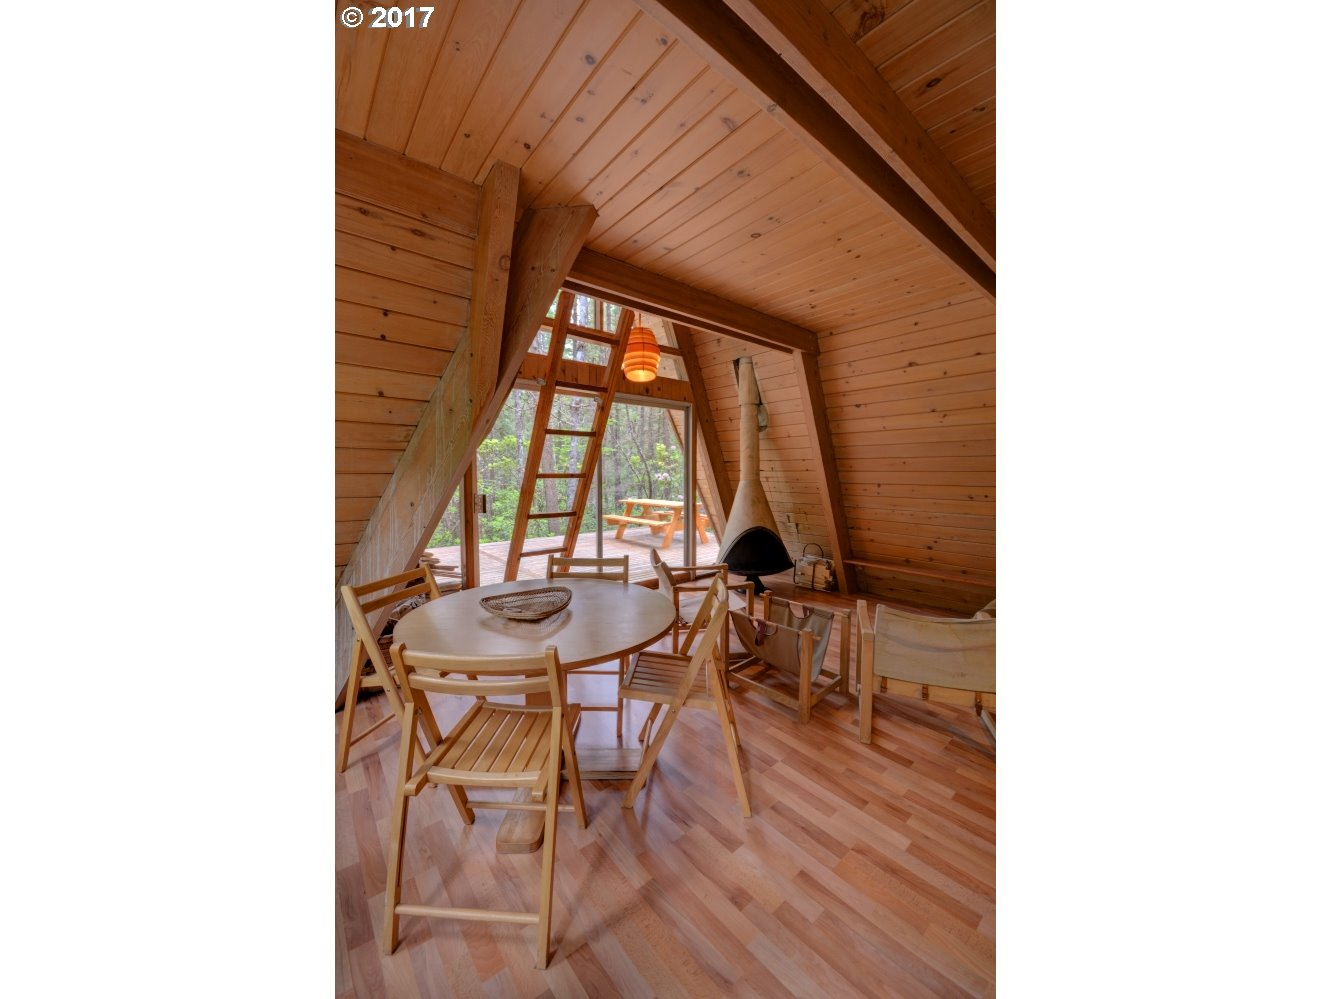 omht vacations we mt cabins rentals bookdirect vacation hood this available weekend and have mthoodrentals vacationrentals twitter mthood